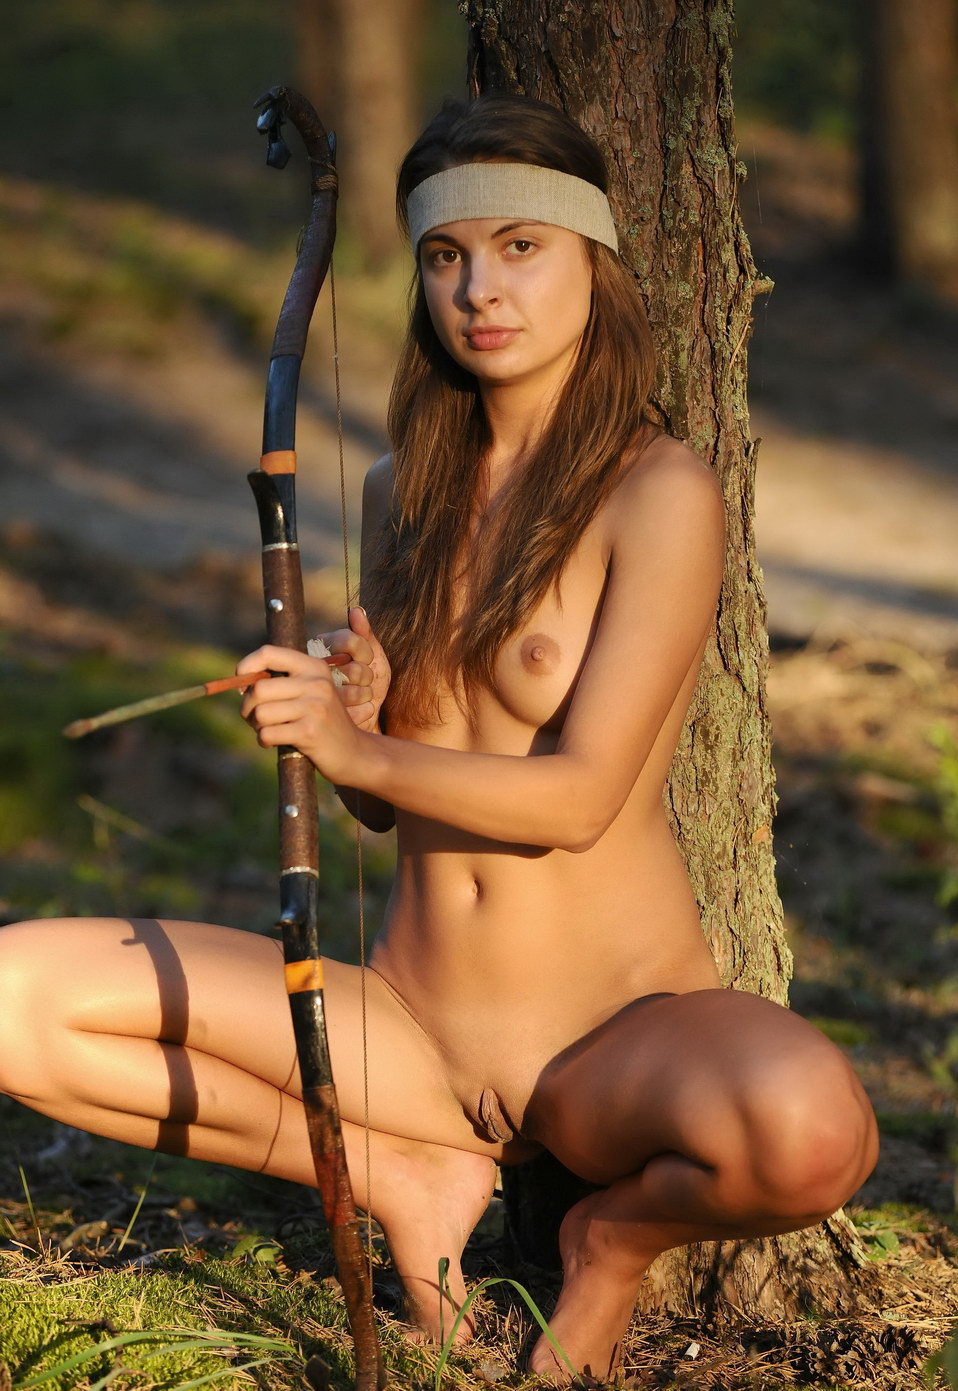 bow hunting women nude